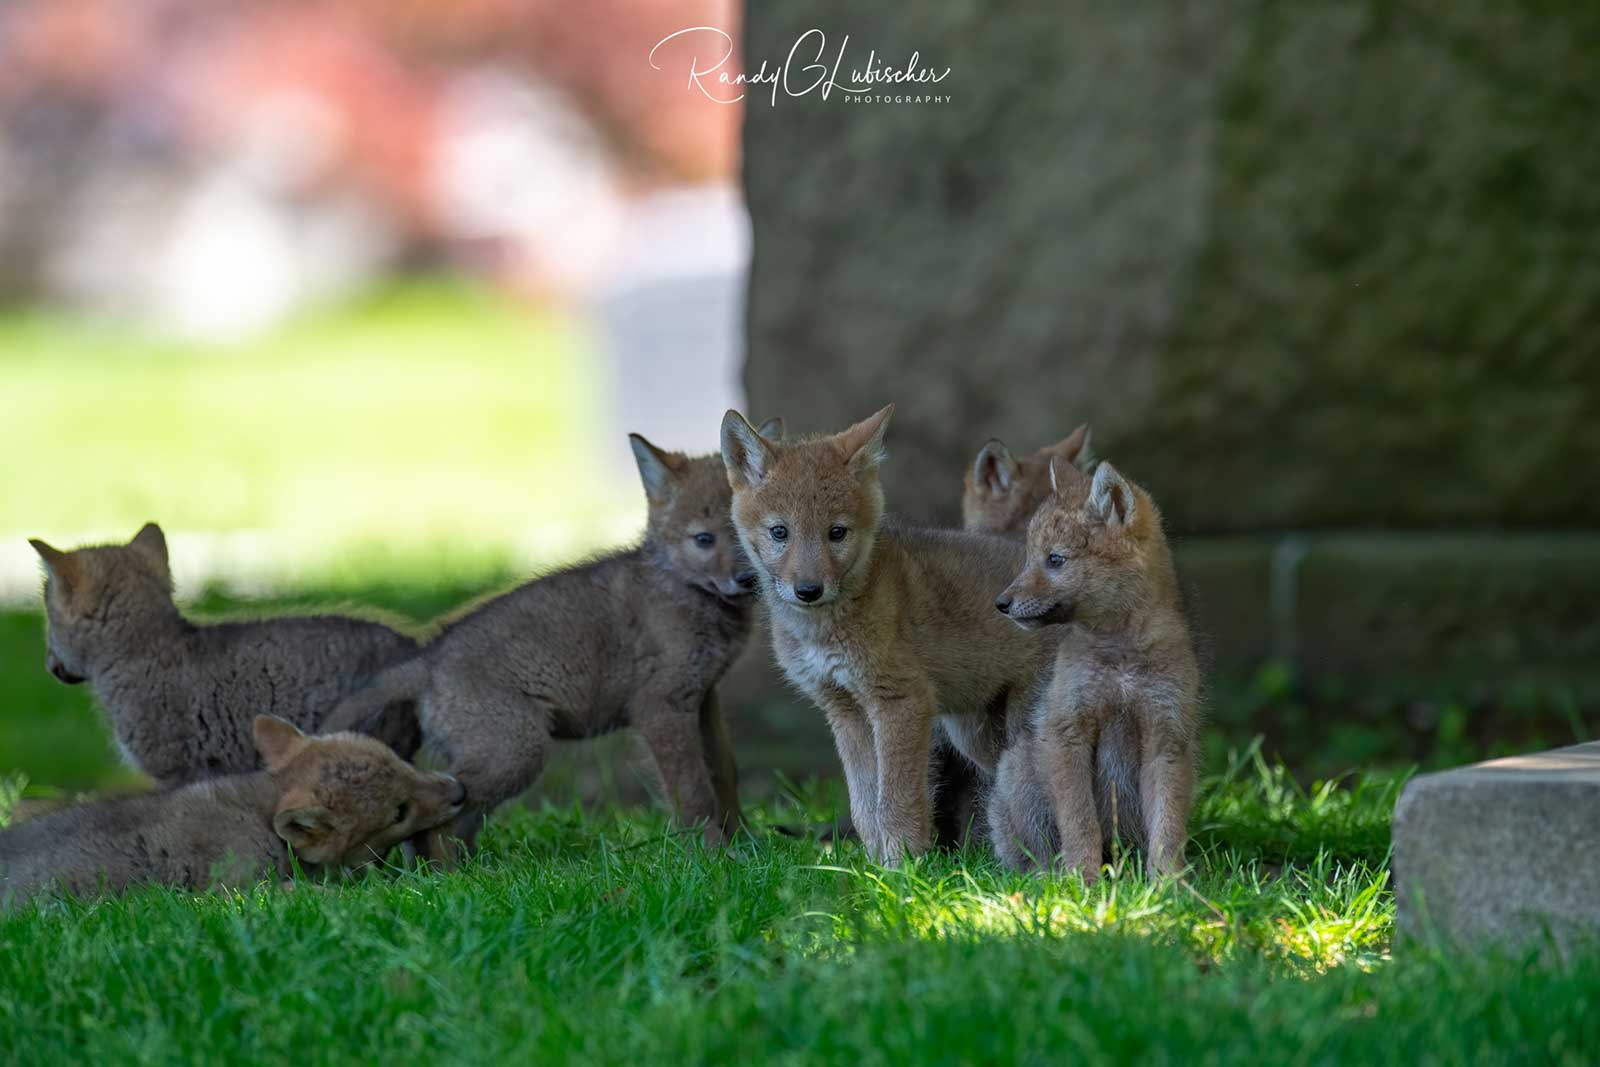 A Wild Mother's Little Ones